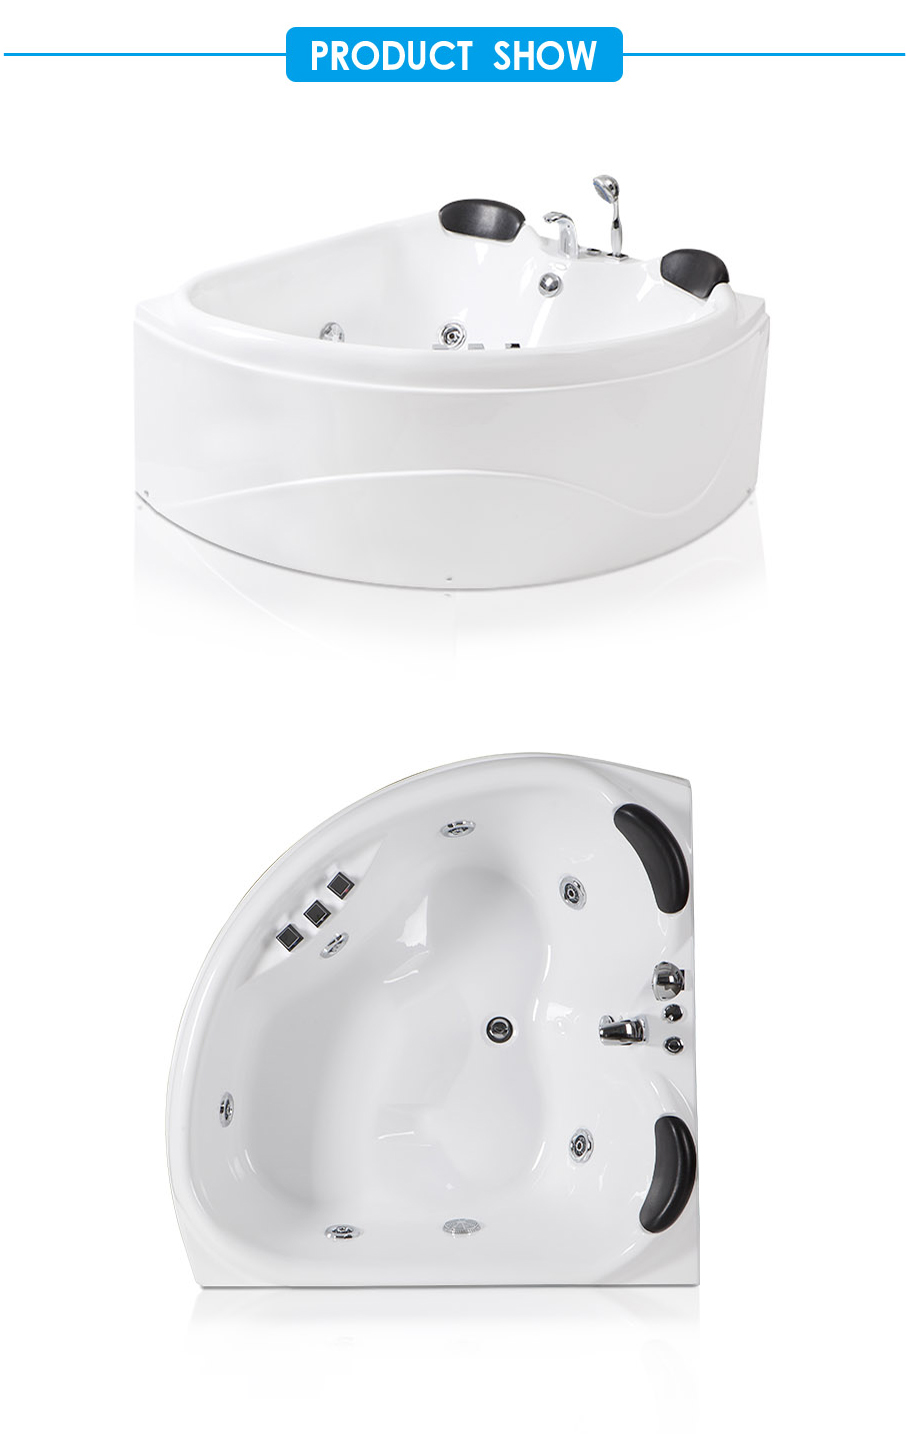 Primo Two Person Whirlpool Bath Tub